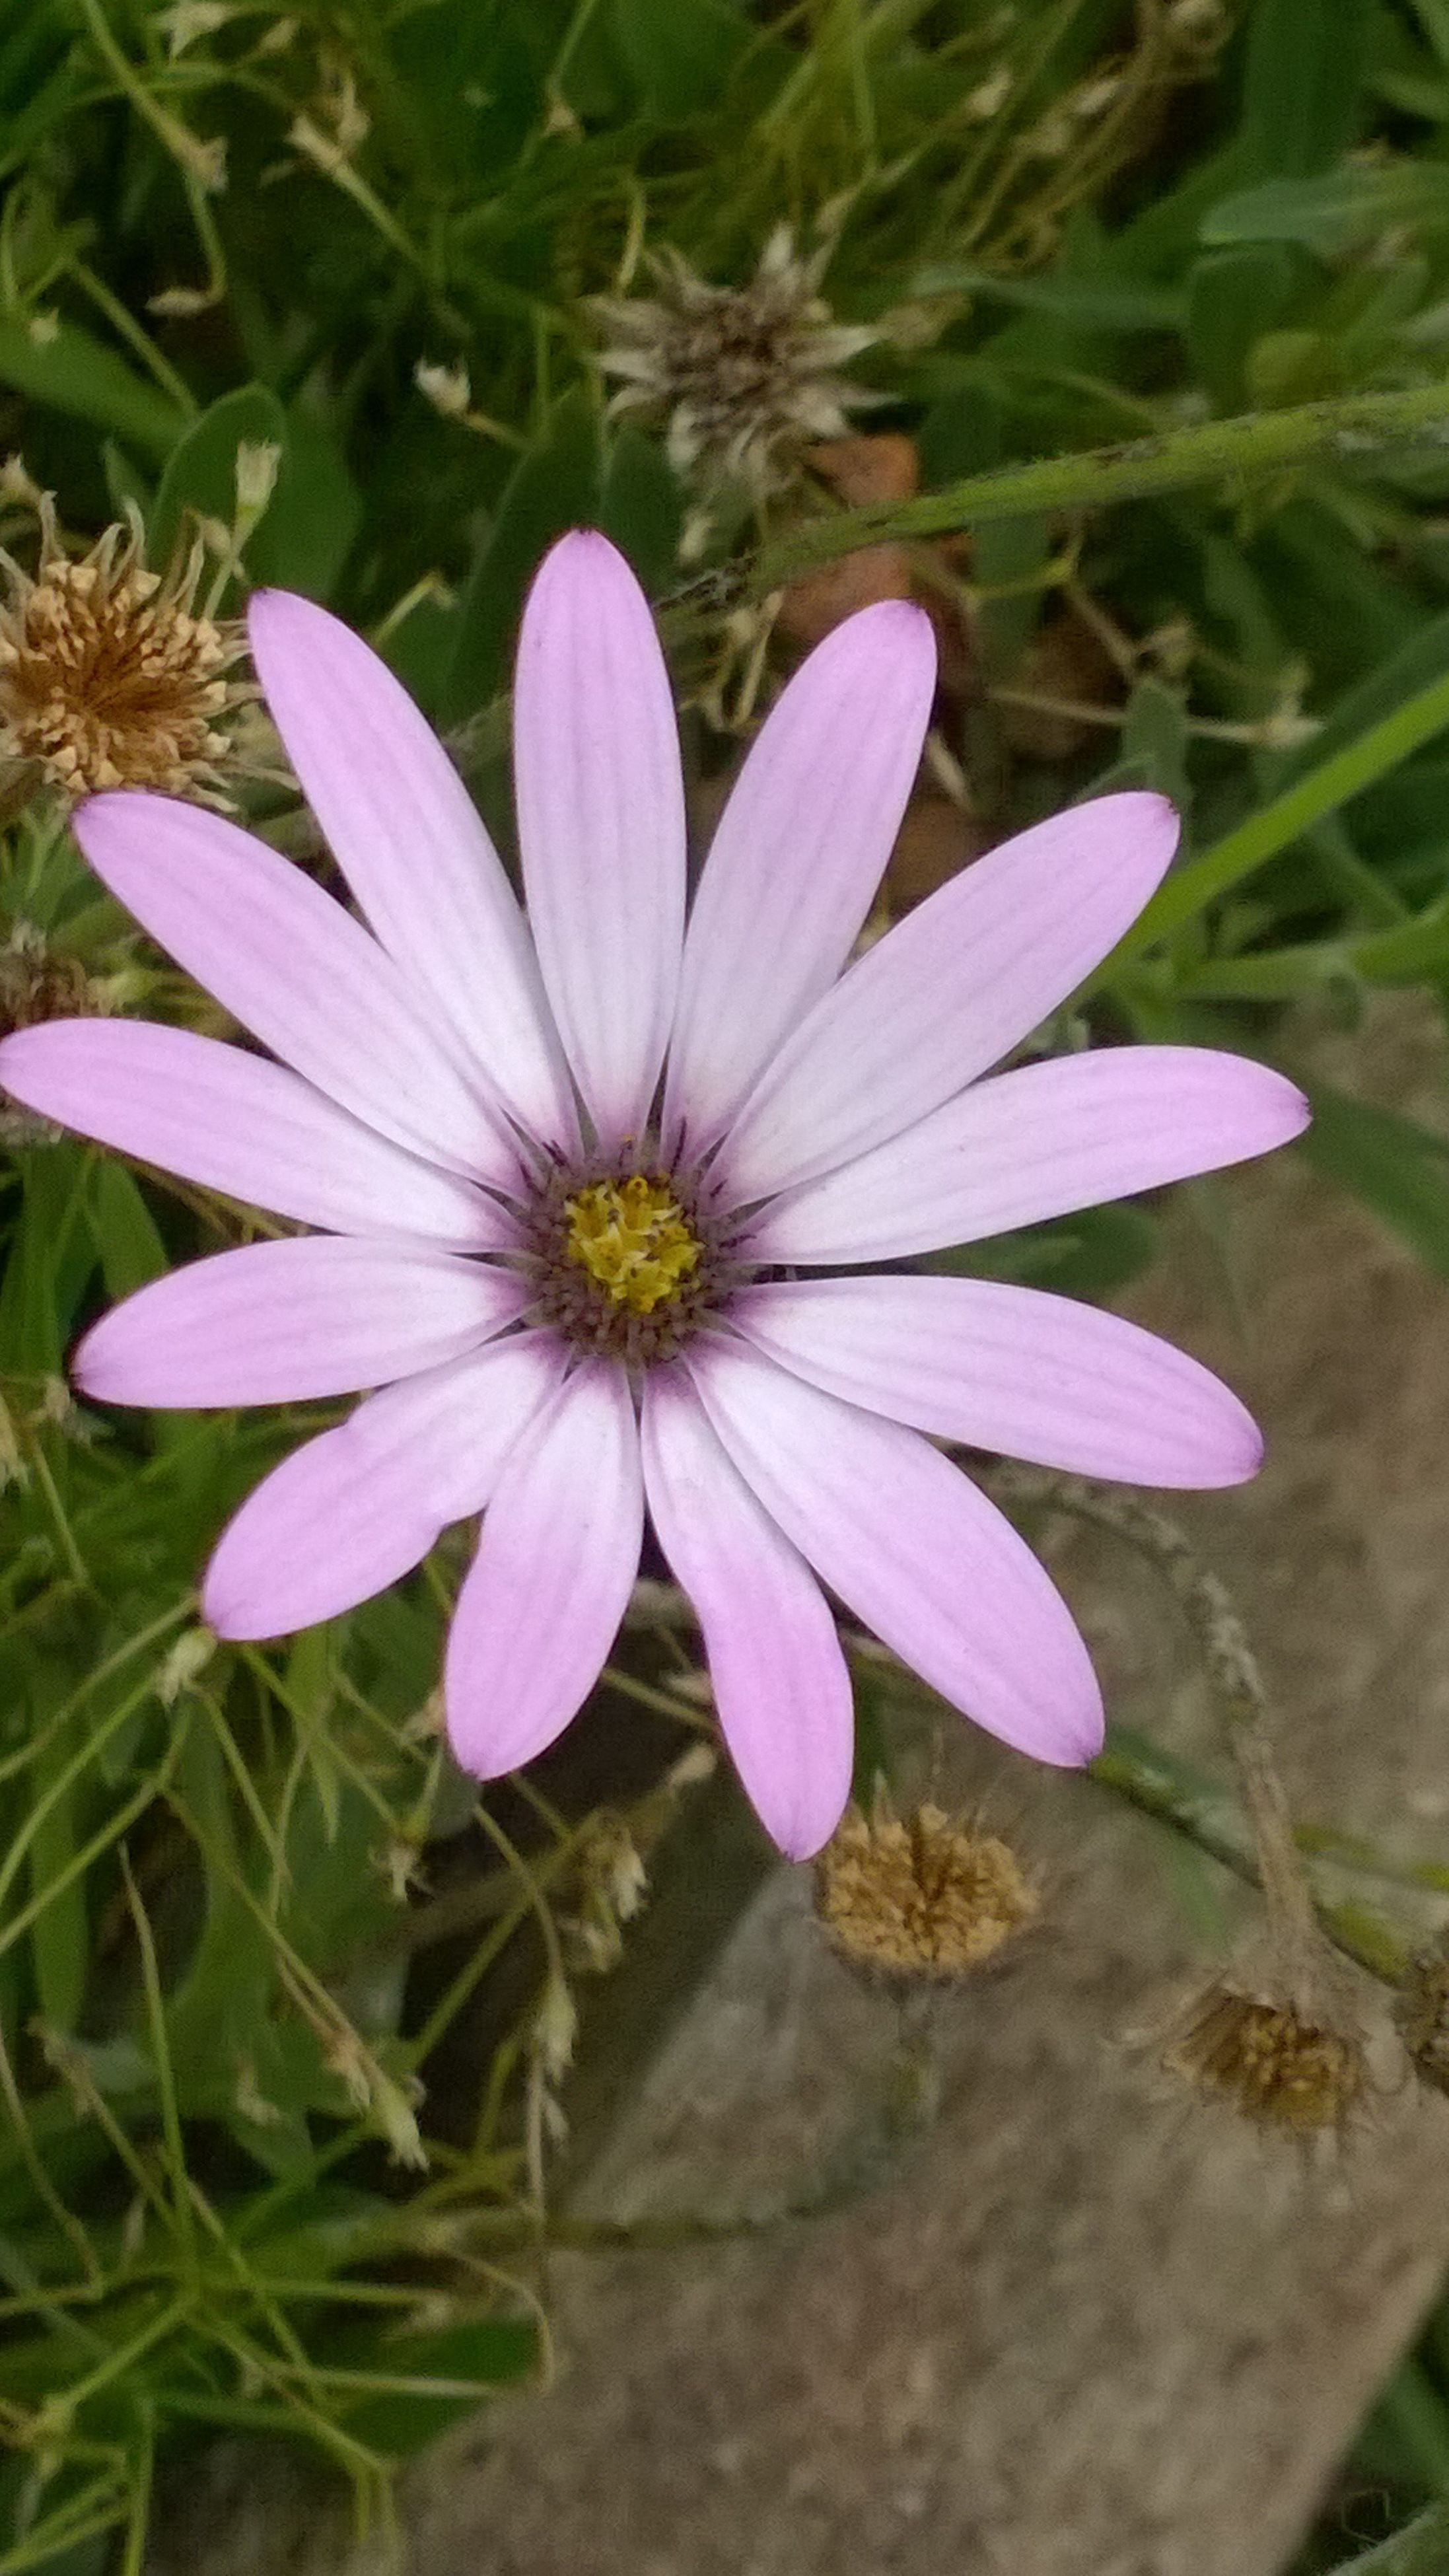 flower, petal, freshness, fragility, flower head, growth, beauty in nature, single flower, blooming, purple, nature, high angle view, close-up, plant, pollen, focus on foreground, in bloom, field, pink color, leaf